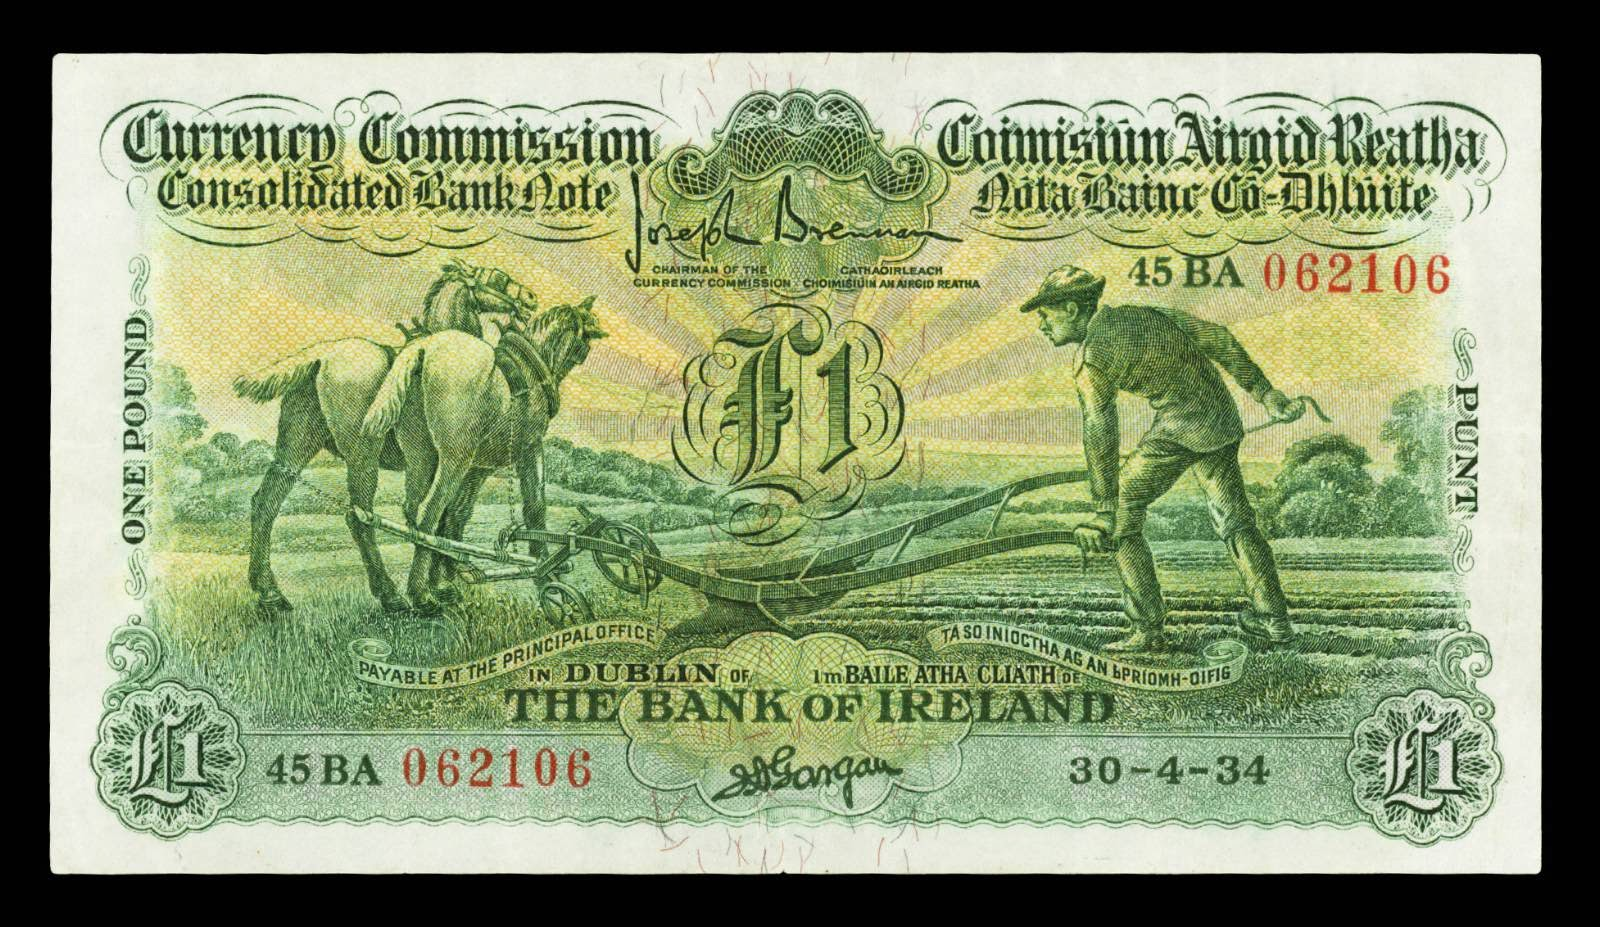 Ireland Currency Commission, Consolidated banknotes One Pound Ploughman Note